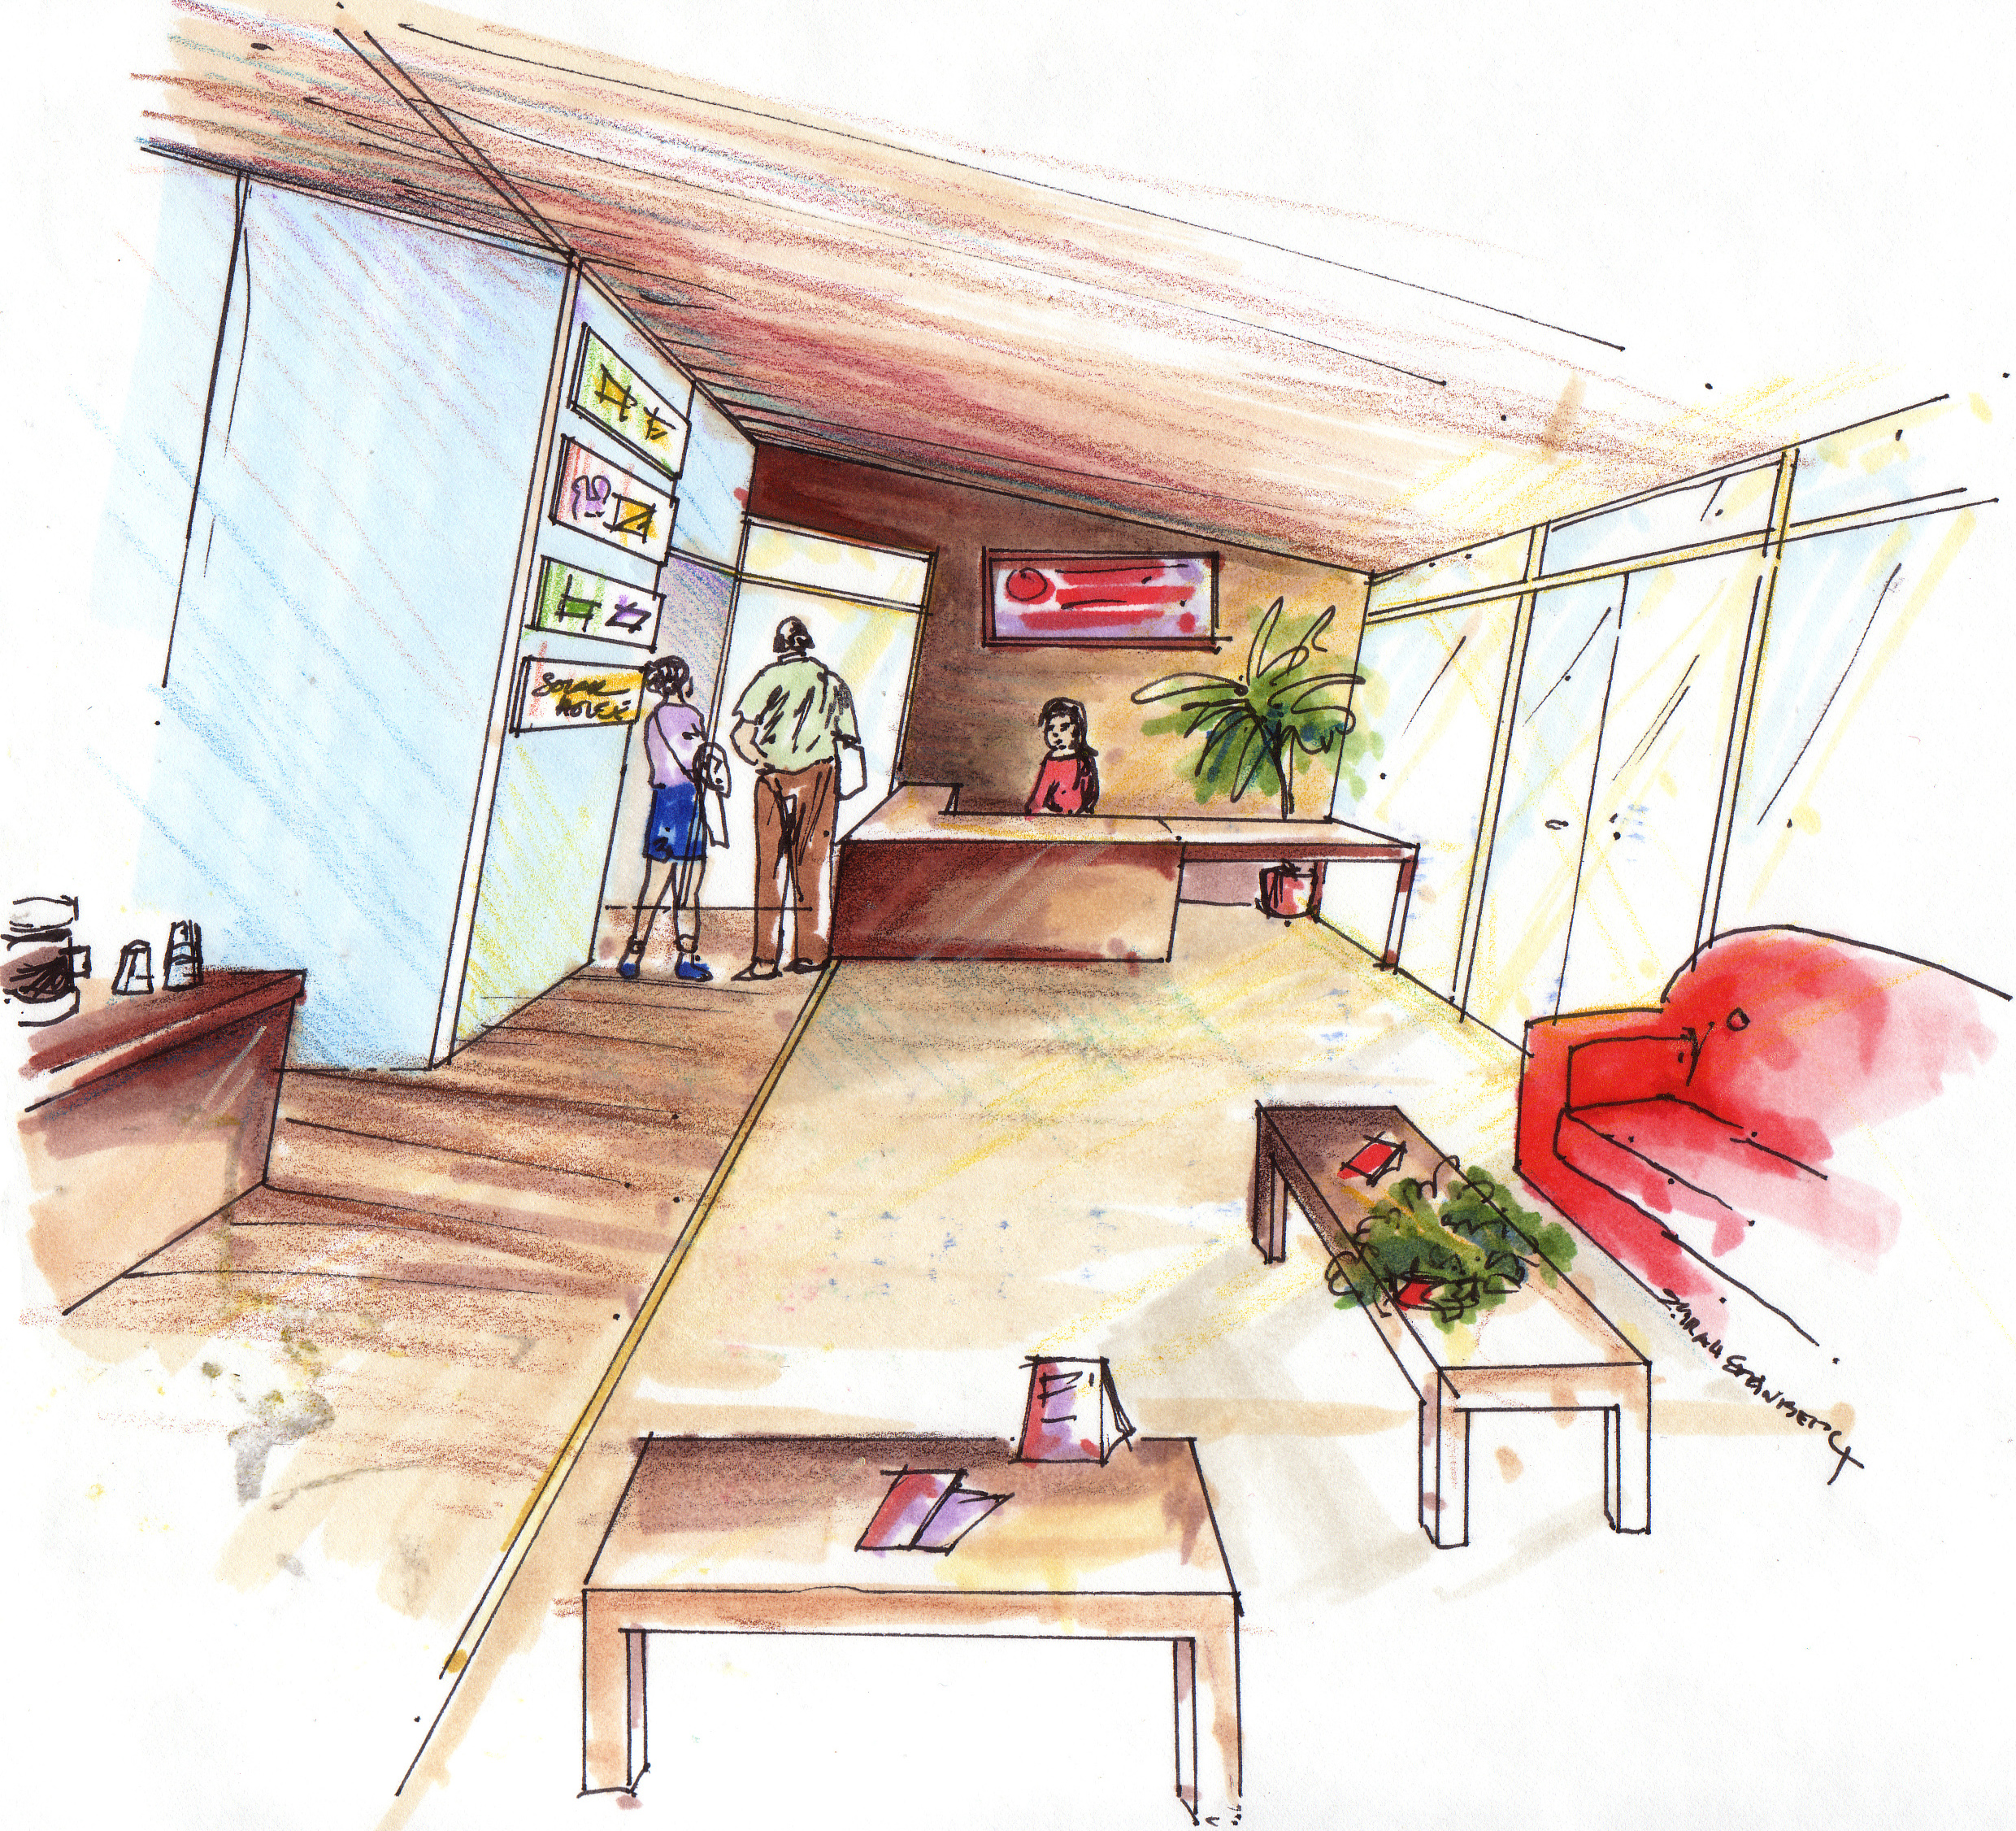 Solar Decathlon interior